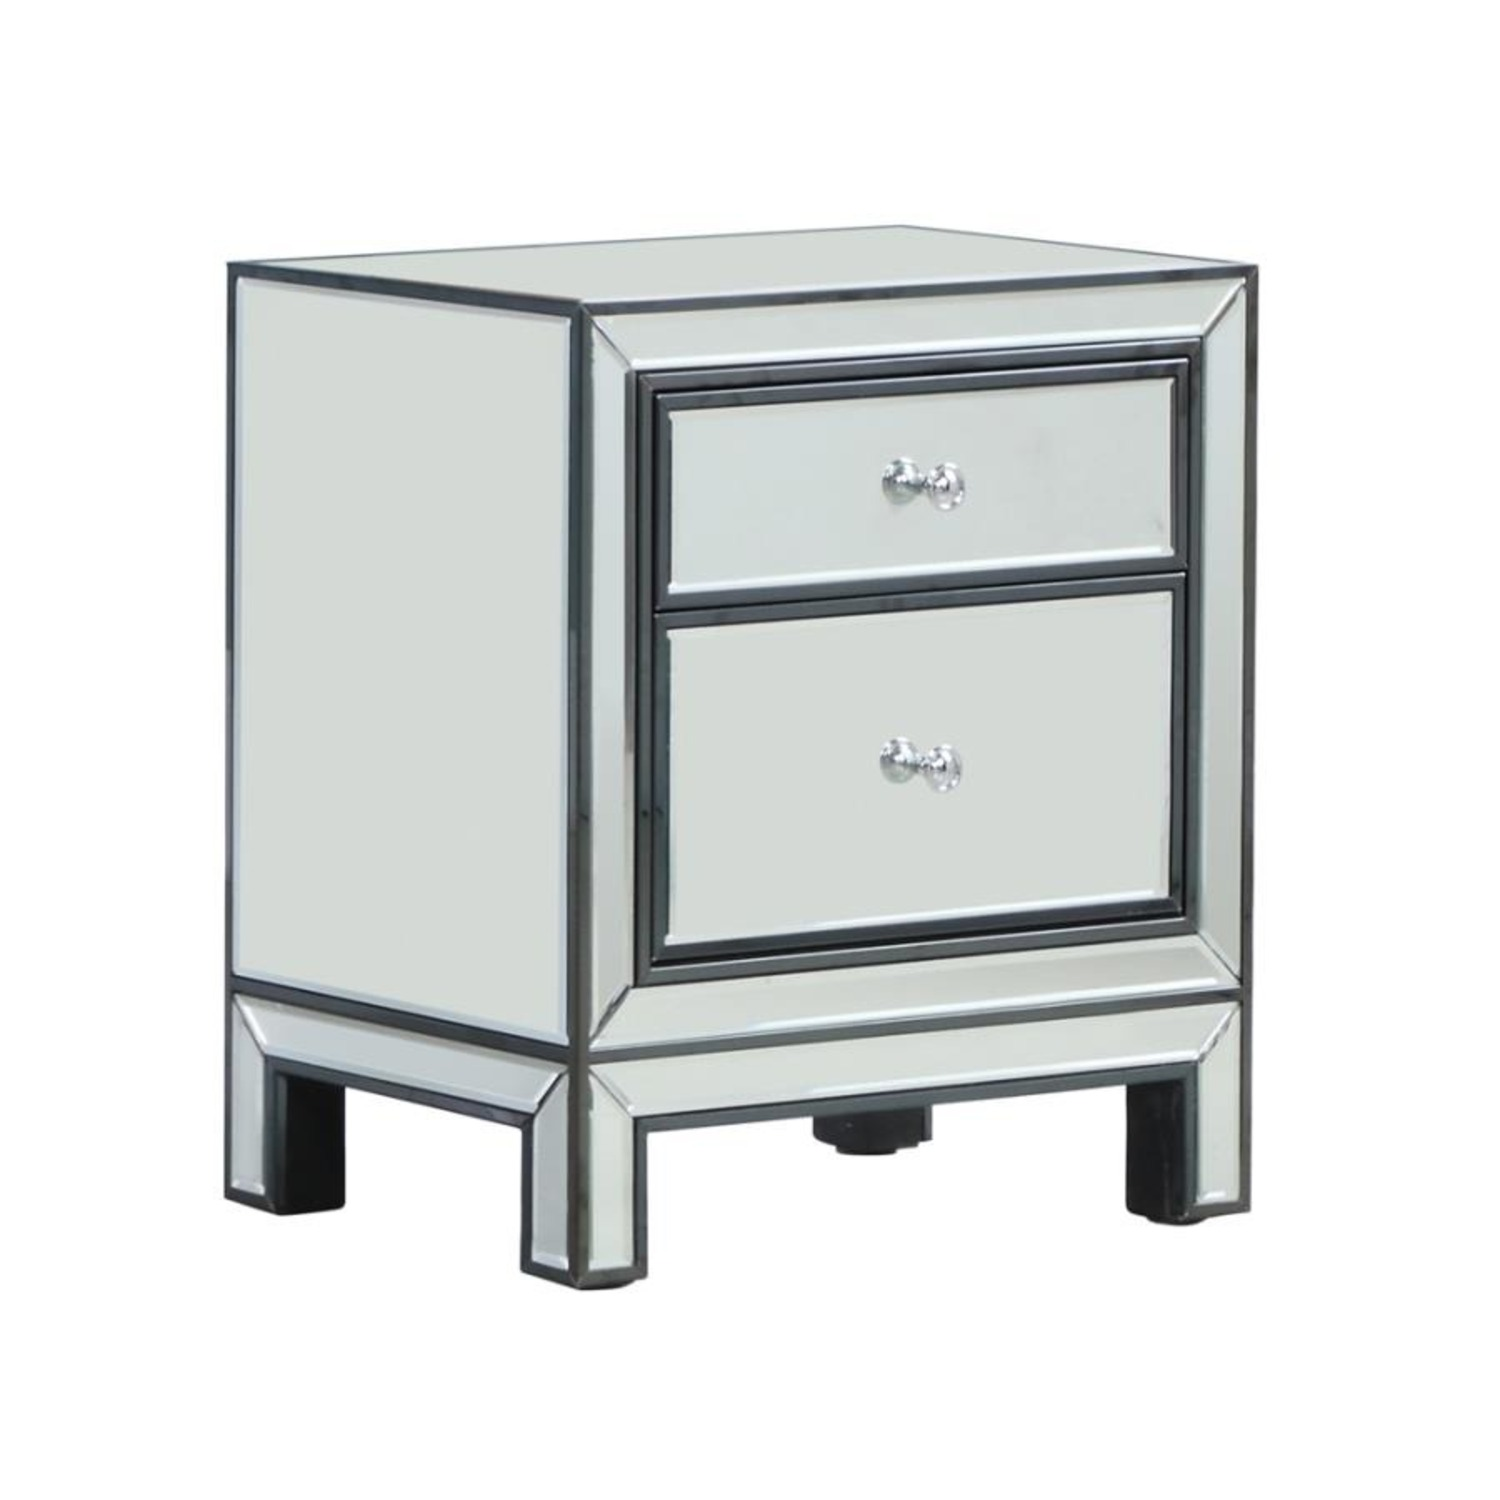 End Table W/ Mirrored Drawers In Silver Finish - image-1